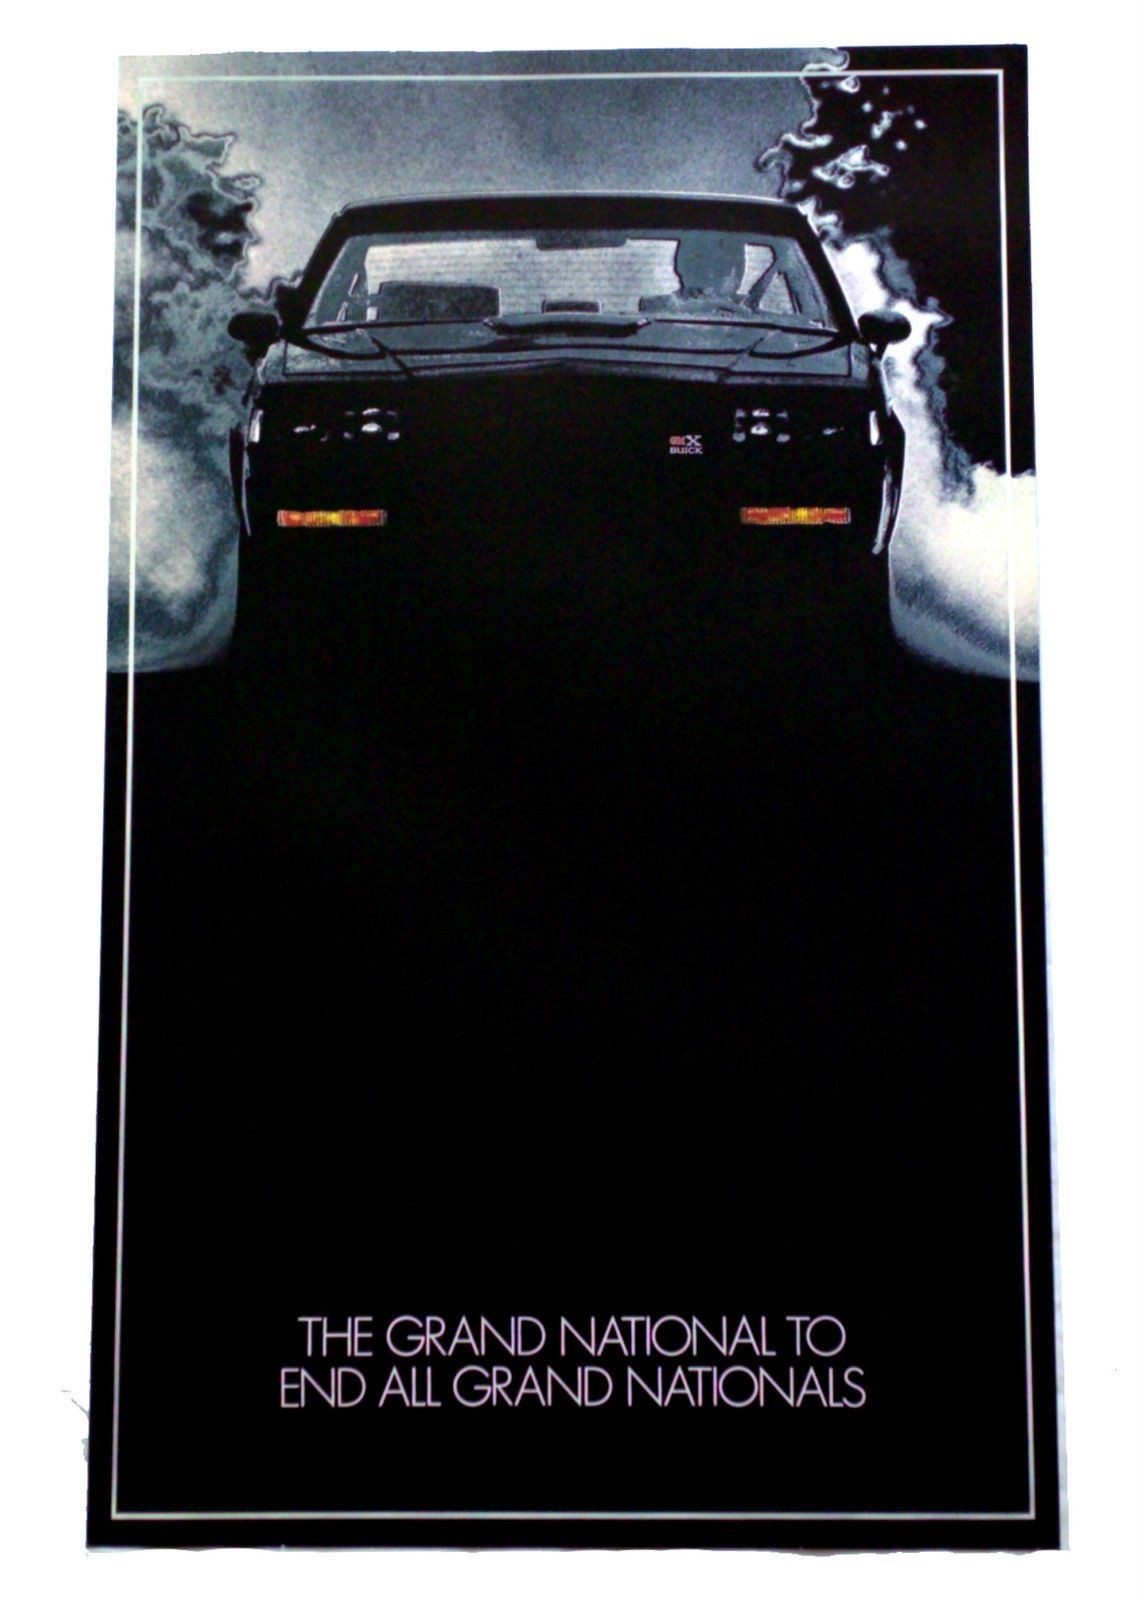 Buick Poster Lgmsports Com Buick Grand National 1987 Buick Grand National Buick Grand National Gnx